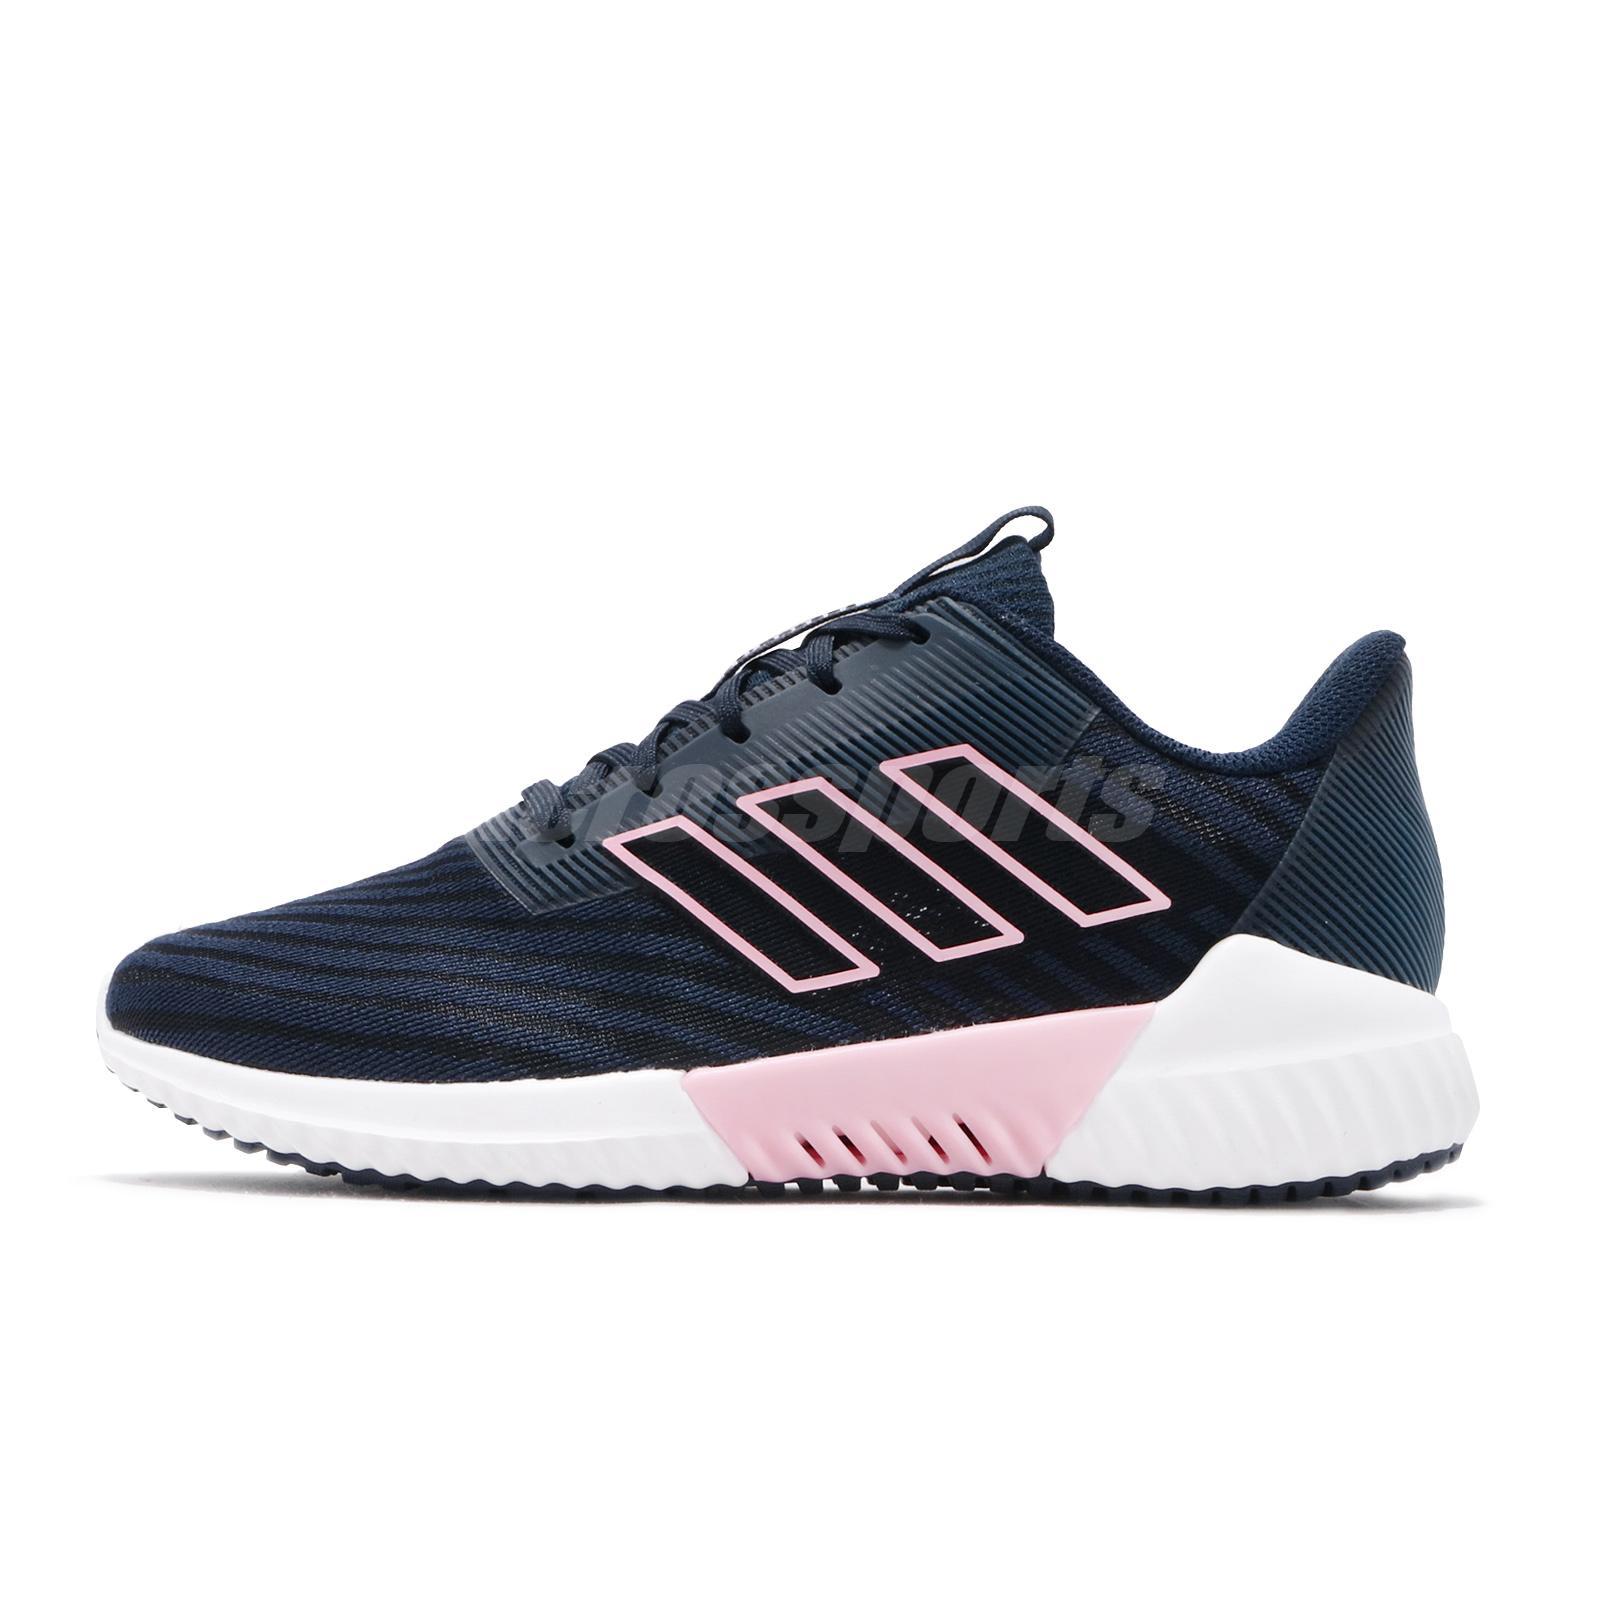 the latest a5f16 eb043 Details about adidas Climacool 2.0 W Navy Pink White Women Running Shoes  Sneakers B75843